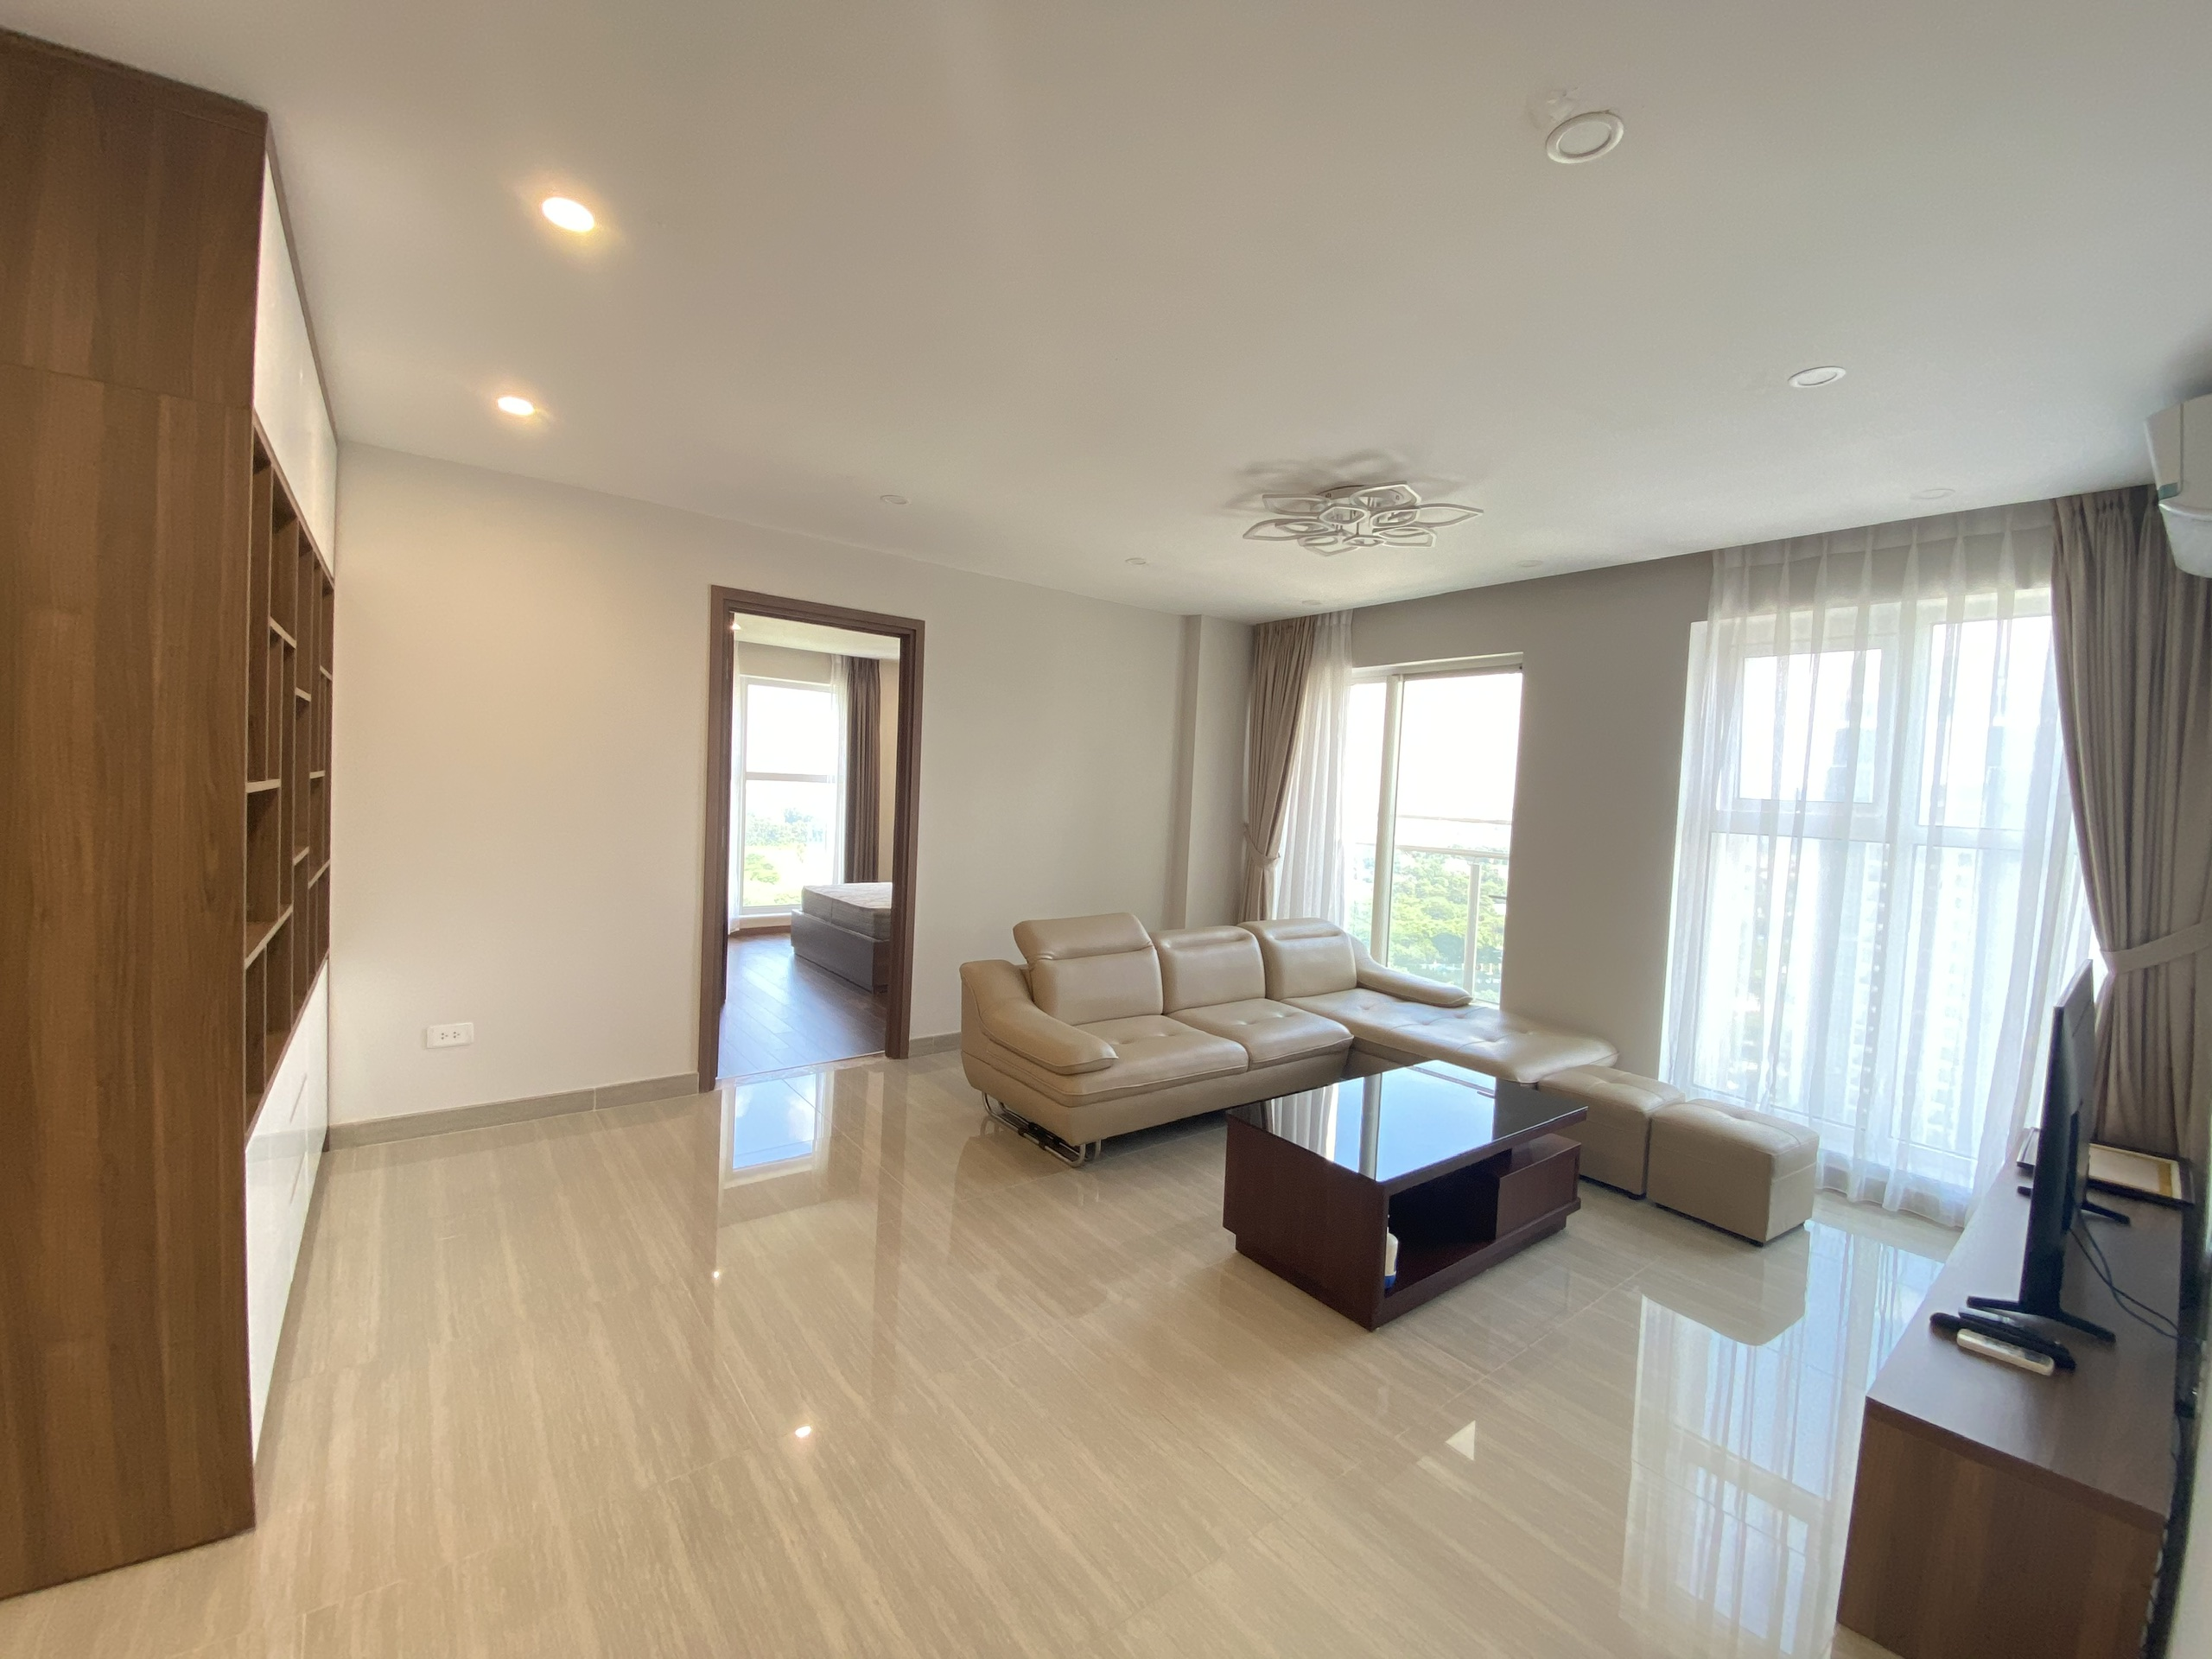 Nice apartment for rent at L3 biulding in Ciputra, area of 154 sqm, design 3 bedrooms, golf course view. Good price. 11